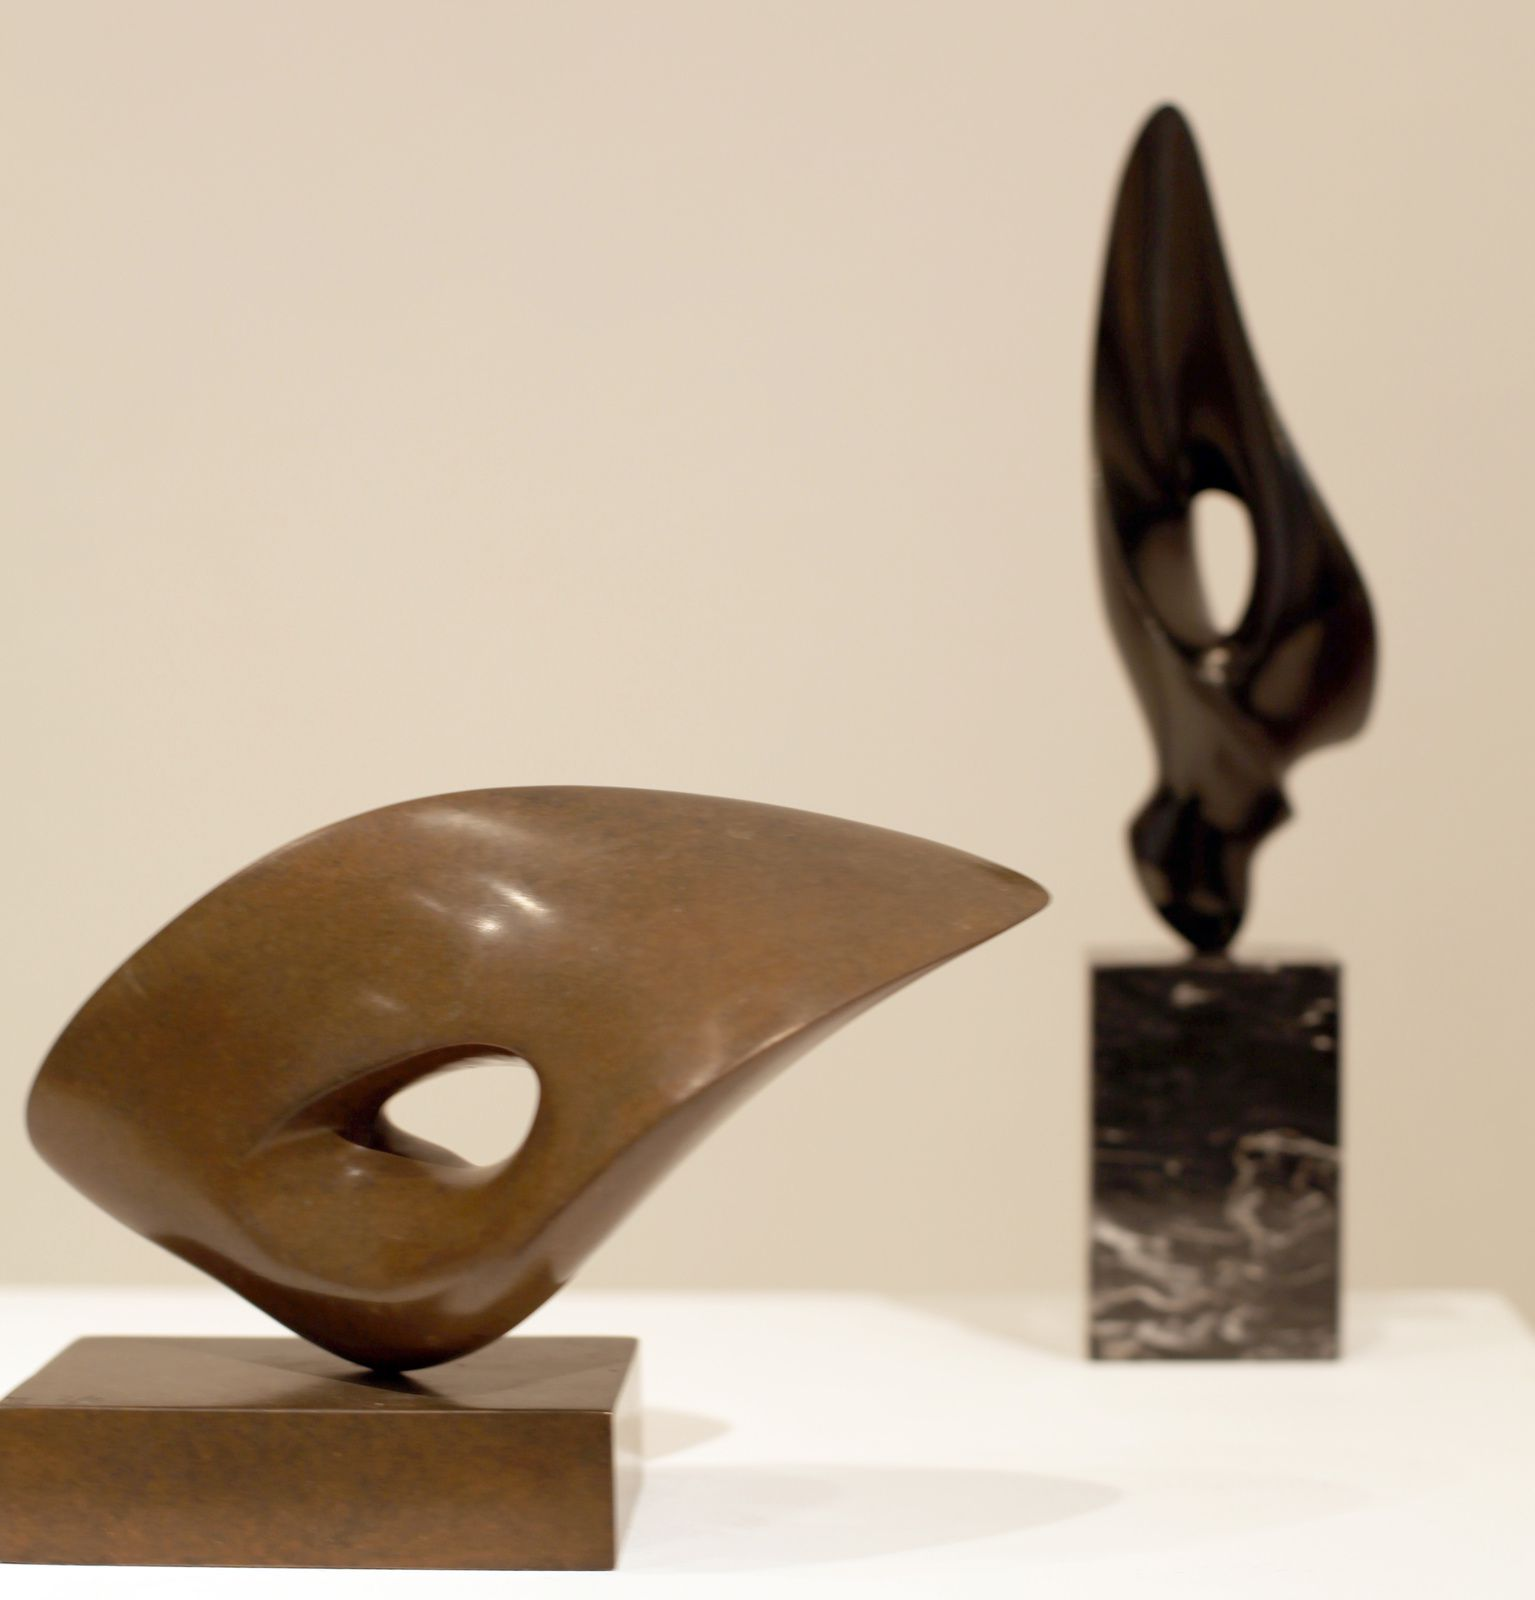 """Fluide"", 2003 et ""Fugue Fougue"", 1979 d'Antoine PONCET - Courtesy Galerie Patrice Trigano © Photo Éric Simon"